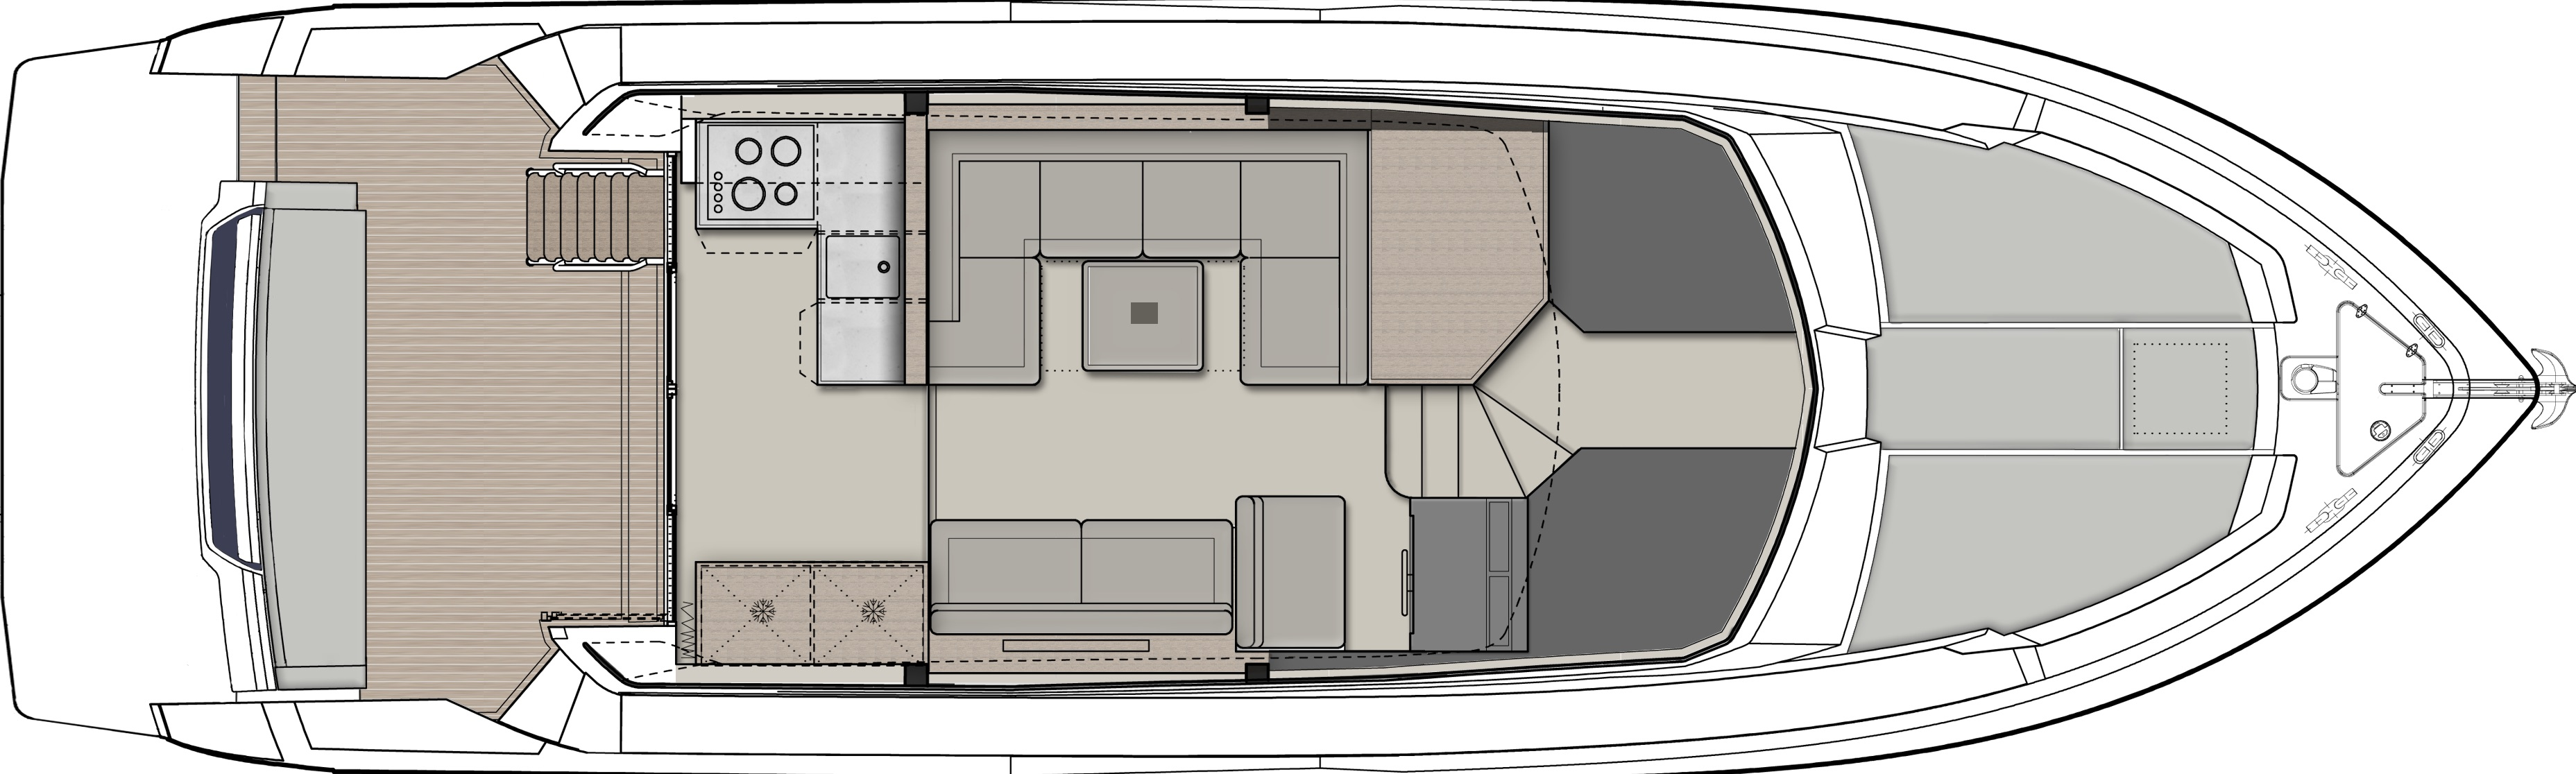 Ferretti 450 Yacht Main Deck Layout